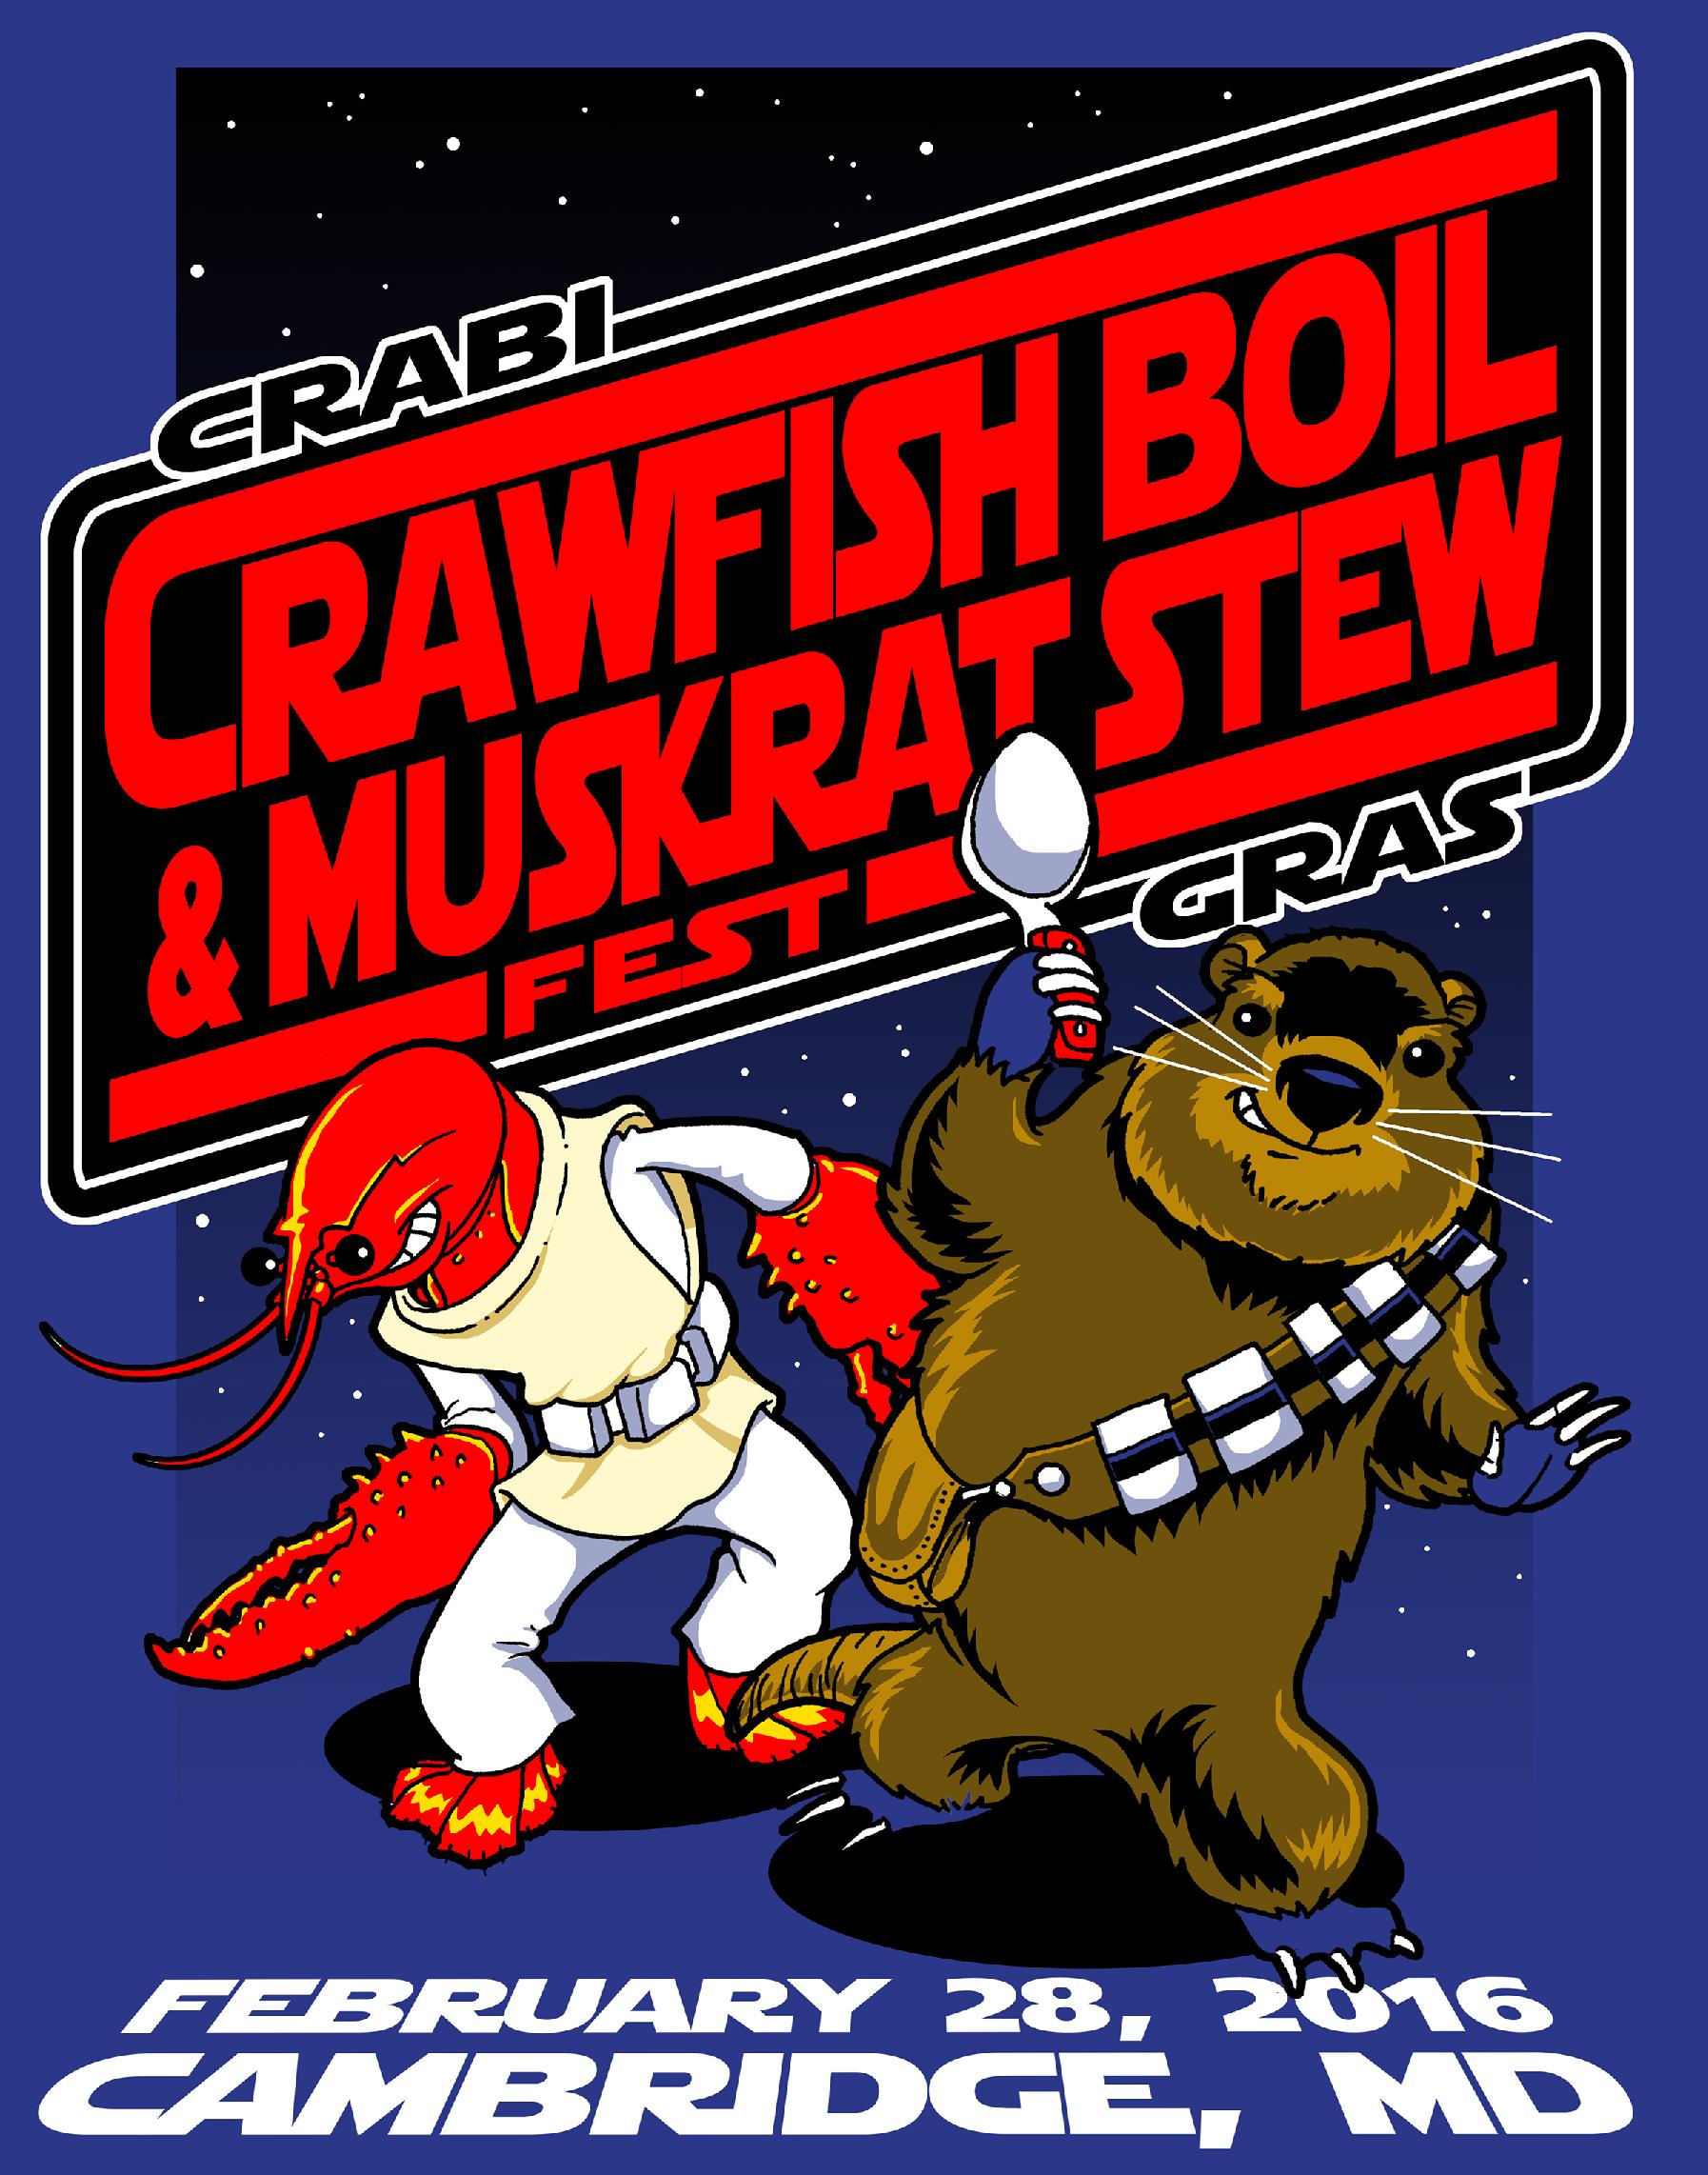 PRINCIPATO HEADLINES CRAWFISH BOIL AND MUSKRAT STEW FEST